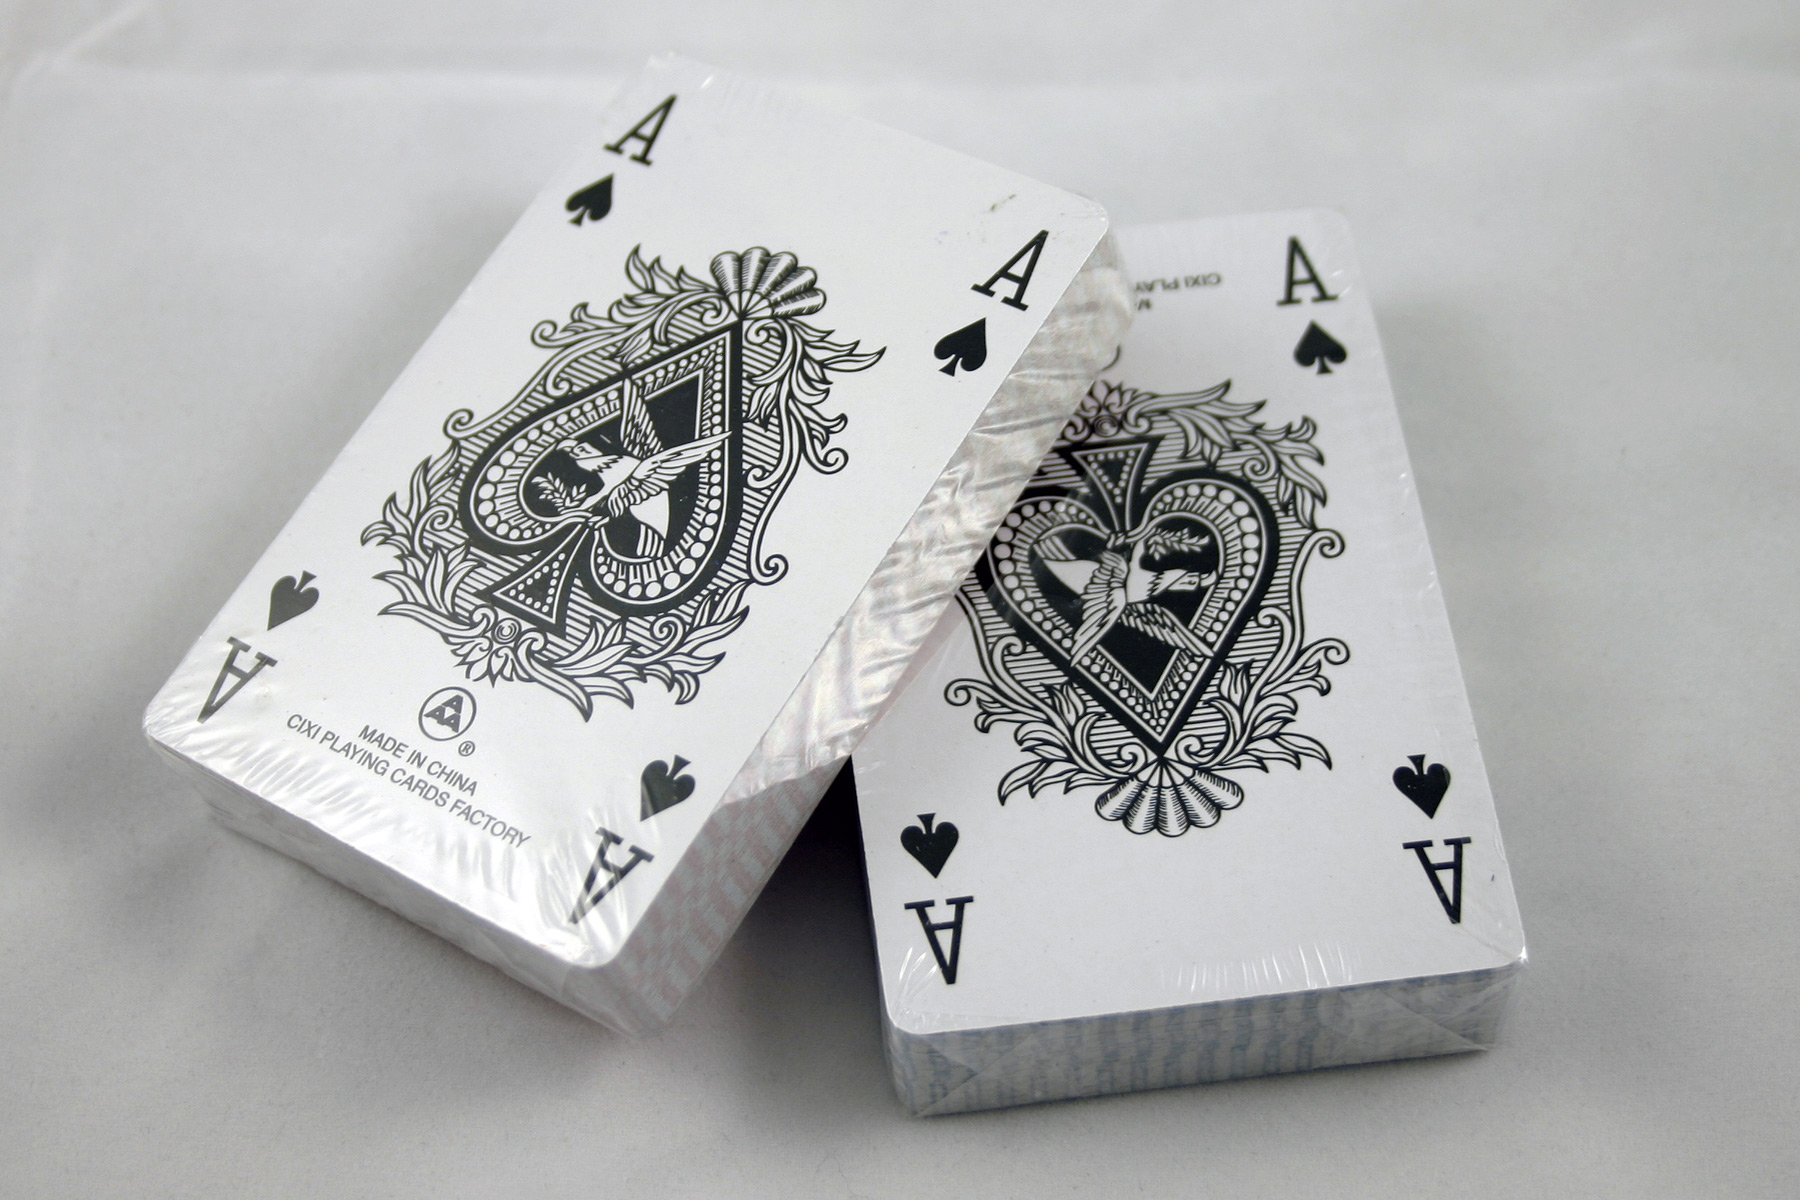 Deck of cards, Ace, Cards, Deck, Play, HQ Photo